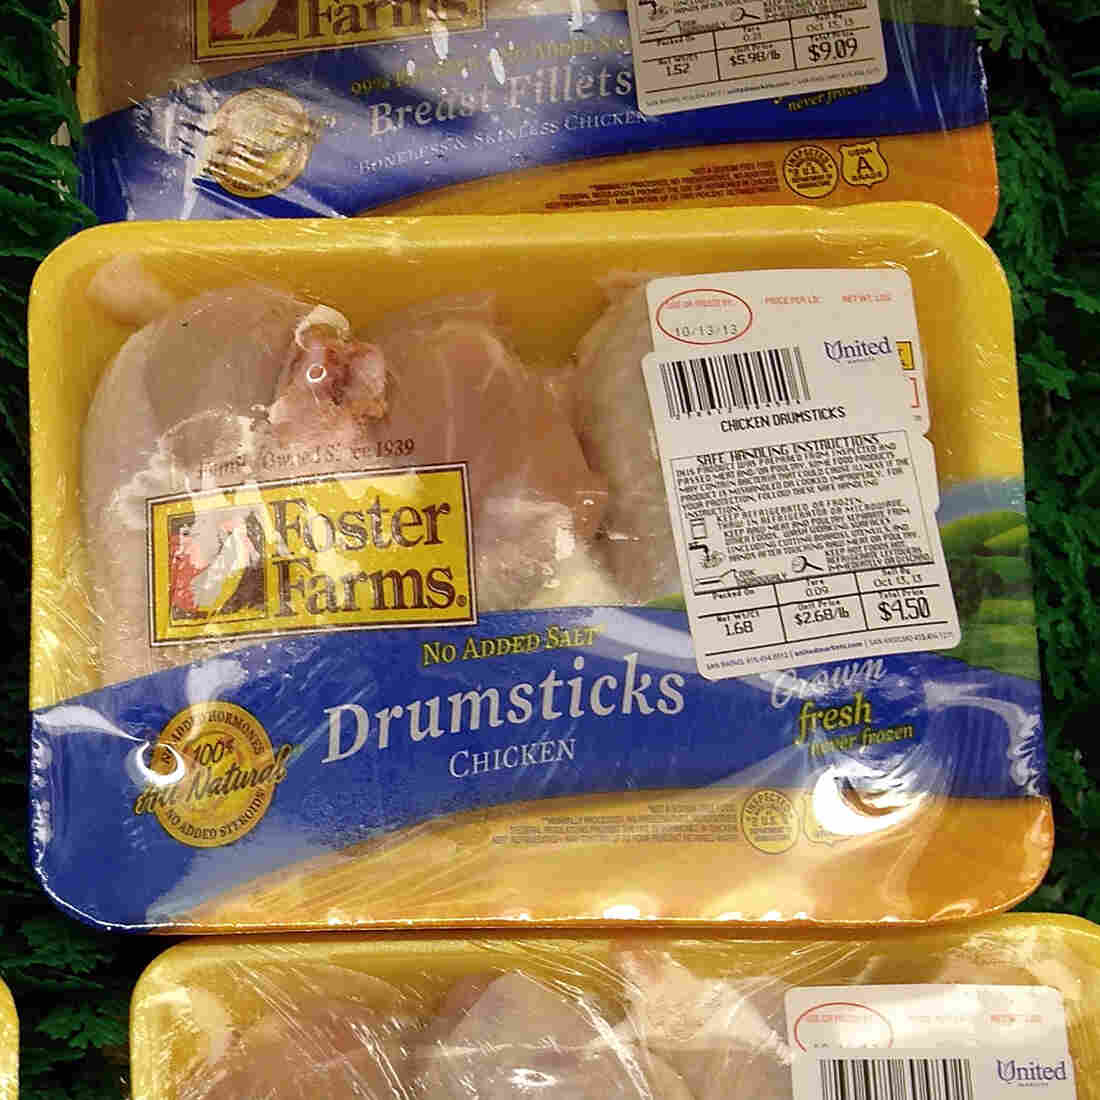 Is Foster Farms A Food Safety Pioneer Or A Persistent Offender?